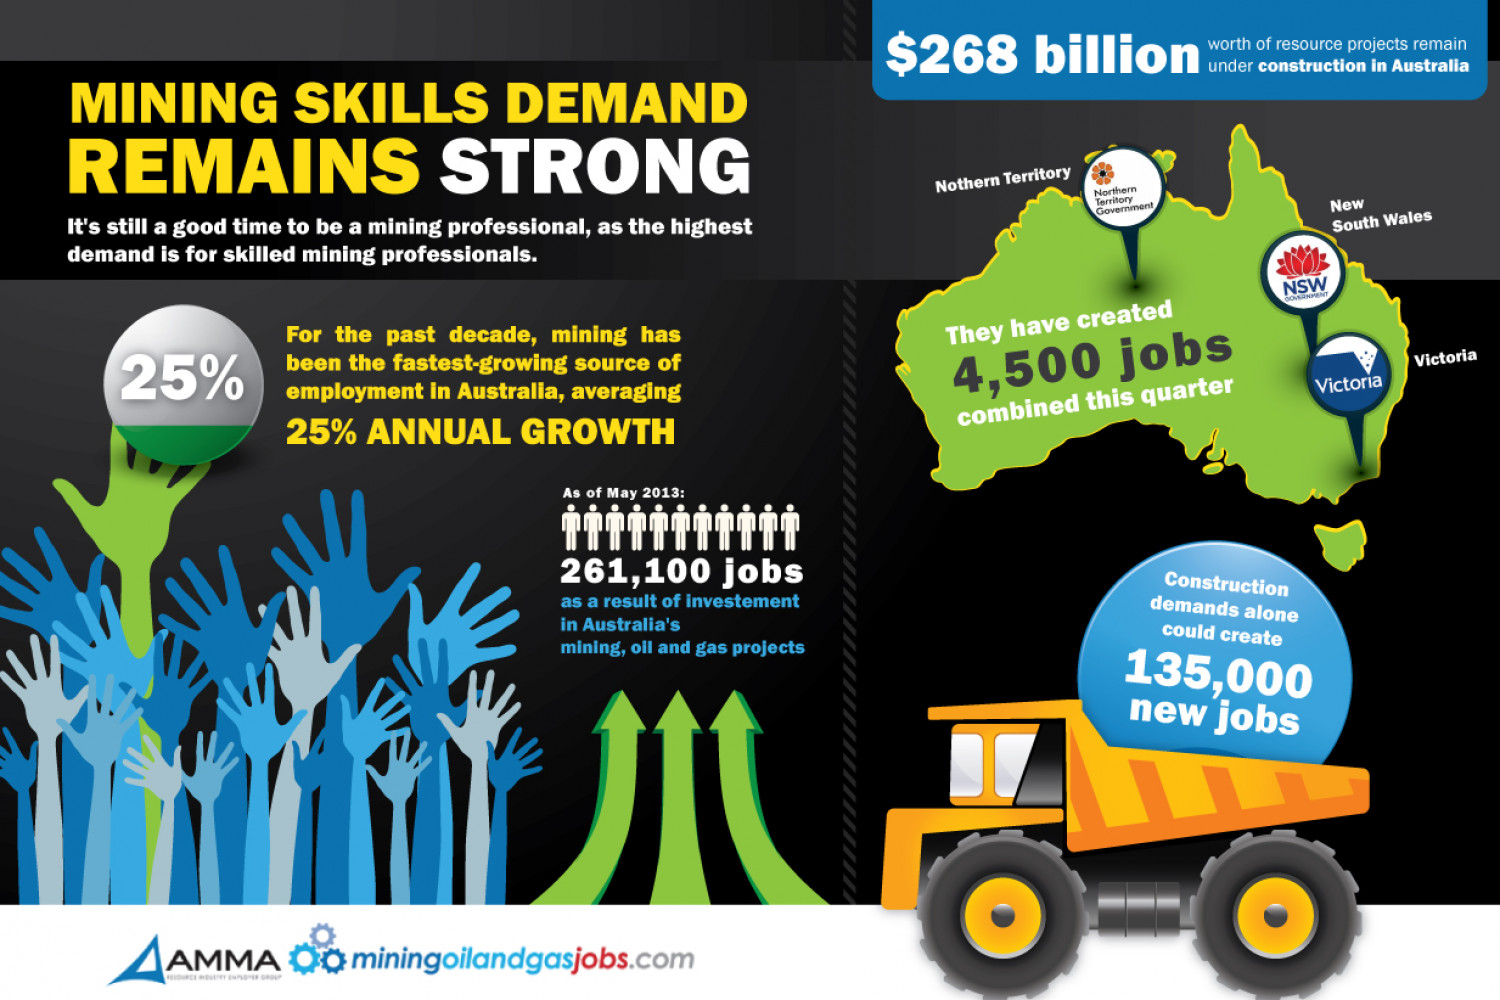 Mining skills demand is strong Infographic